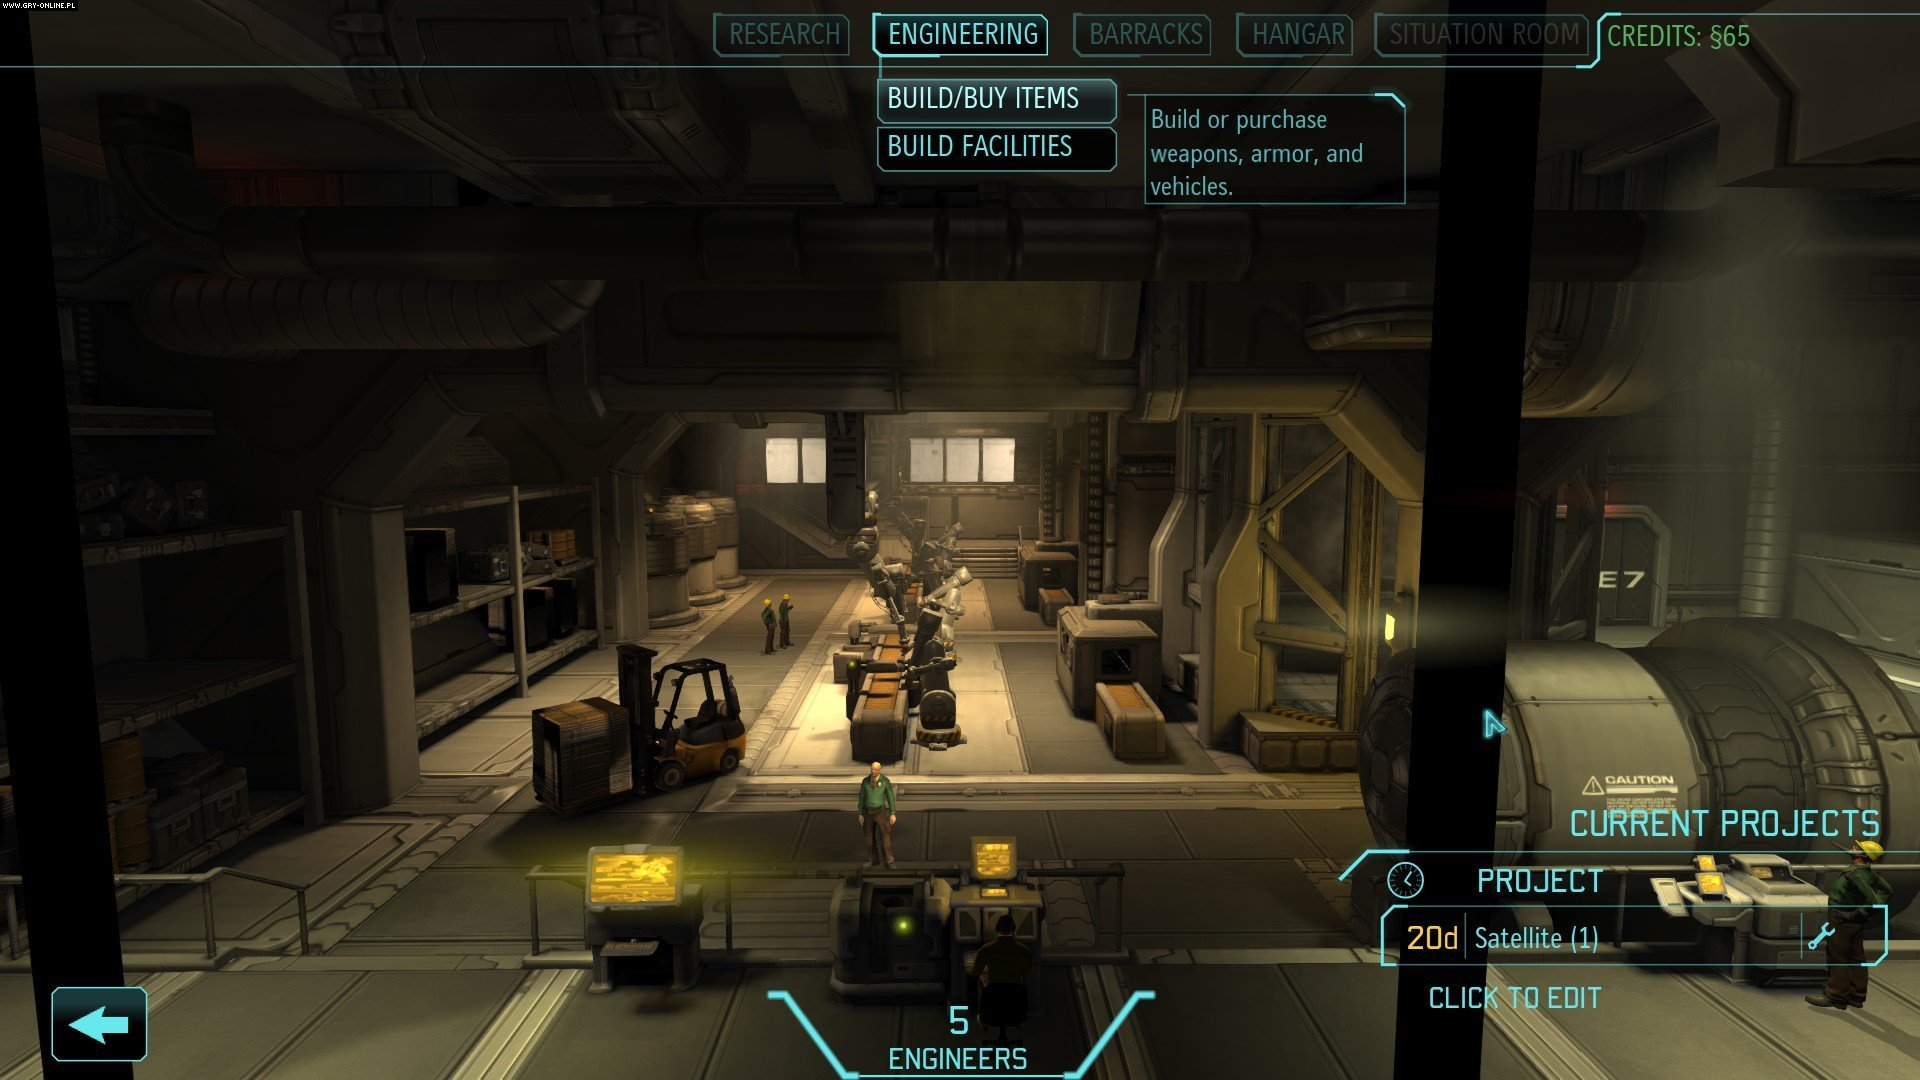 XCOM: Enemy Unknown PC, X360, PS3 Gry Screen 29/179, Firaxis Games, 2K Games